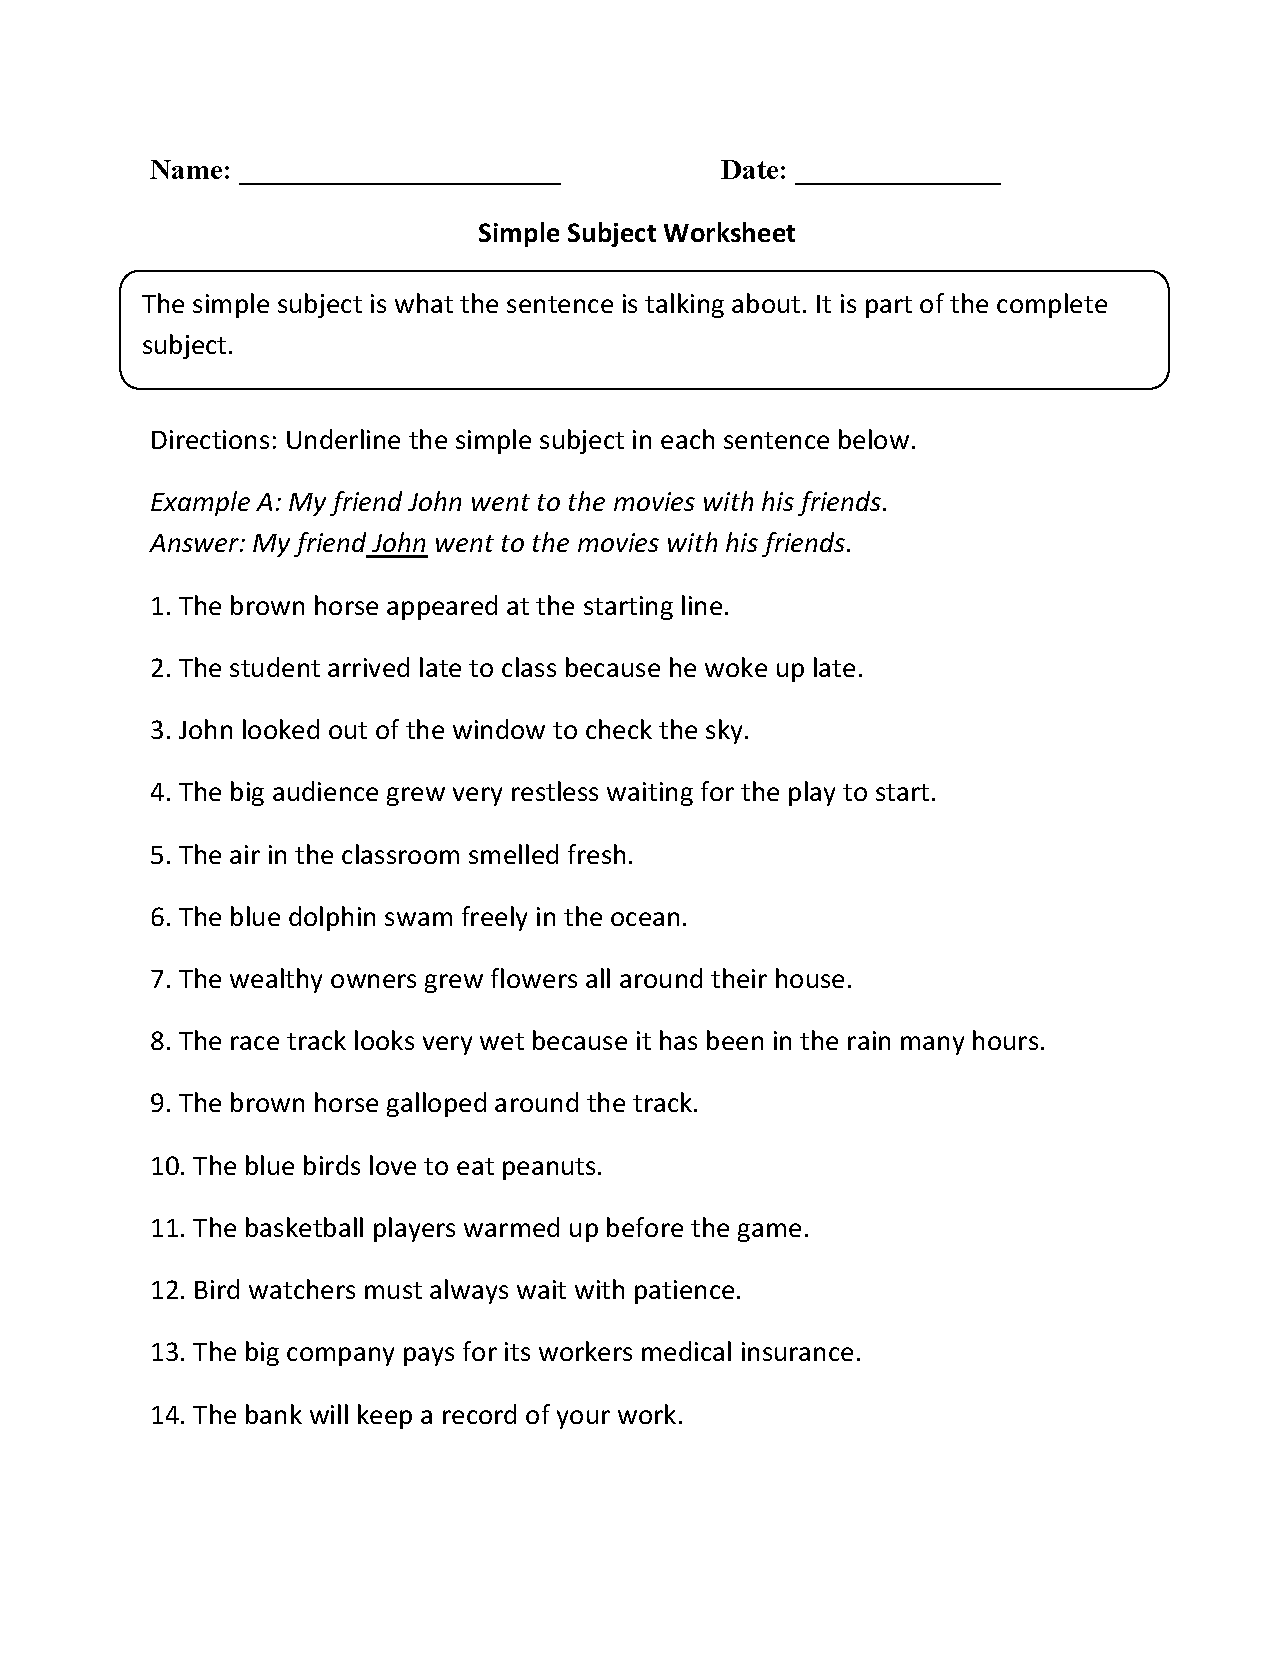 Worksheets Simple Subject Worksheets subject and predicate worksheets simple worksheet worksheet